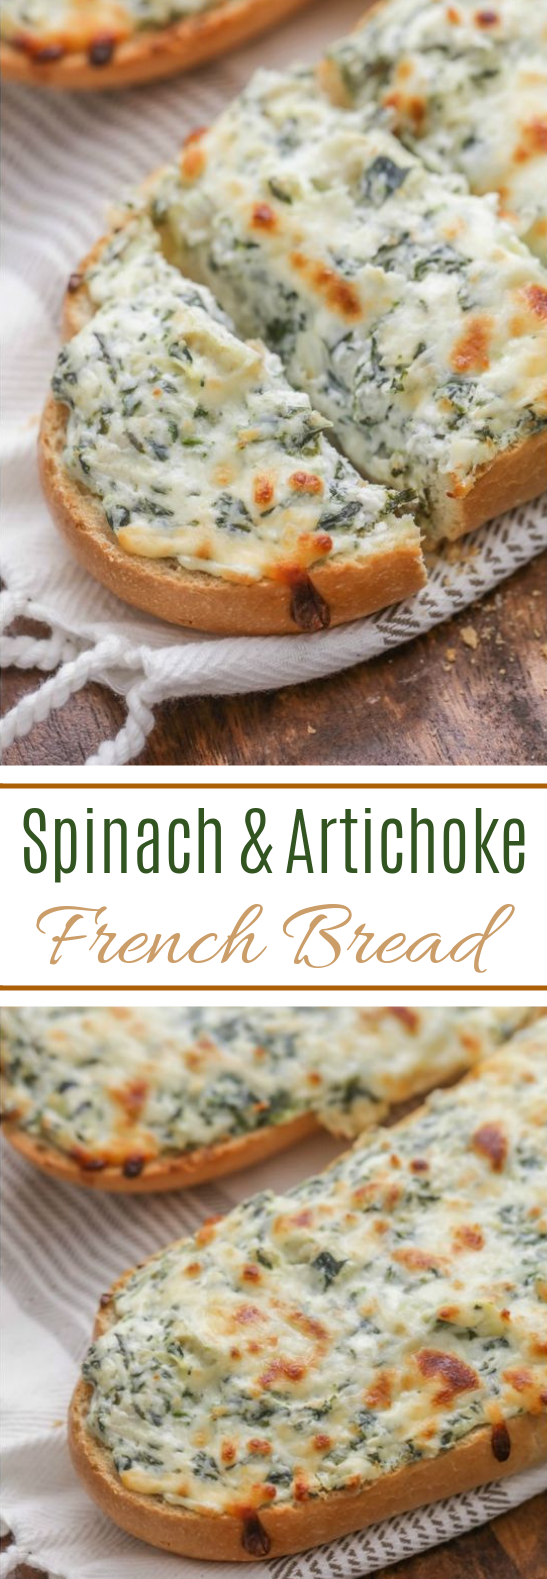 Spinach Artichoke French Bread #appetizer #vegan